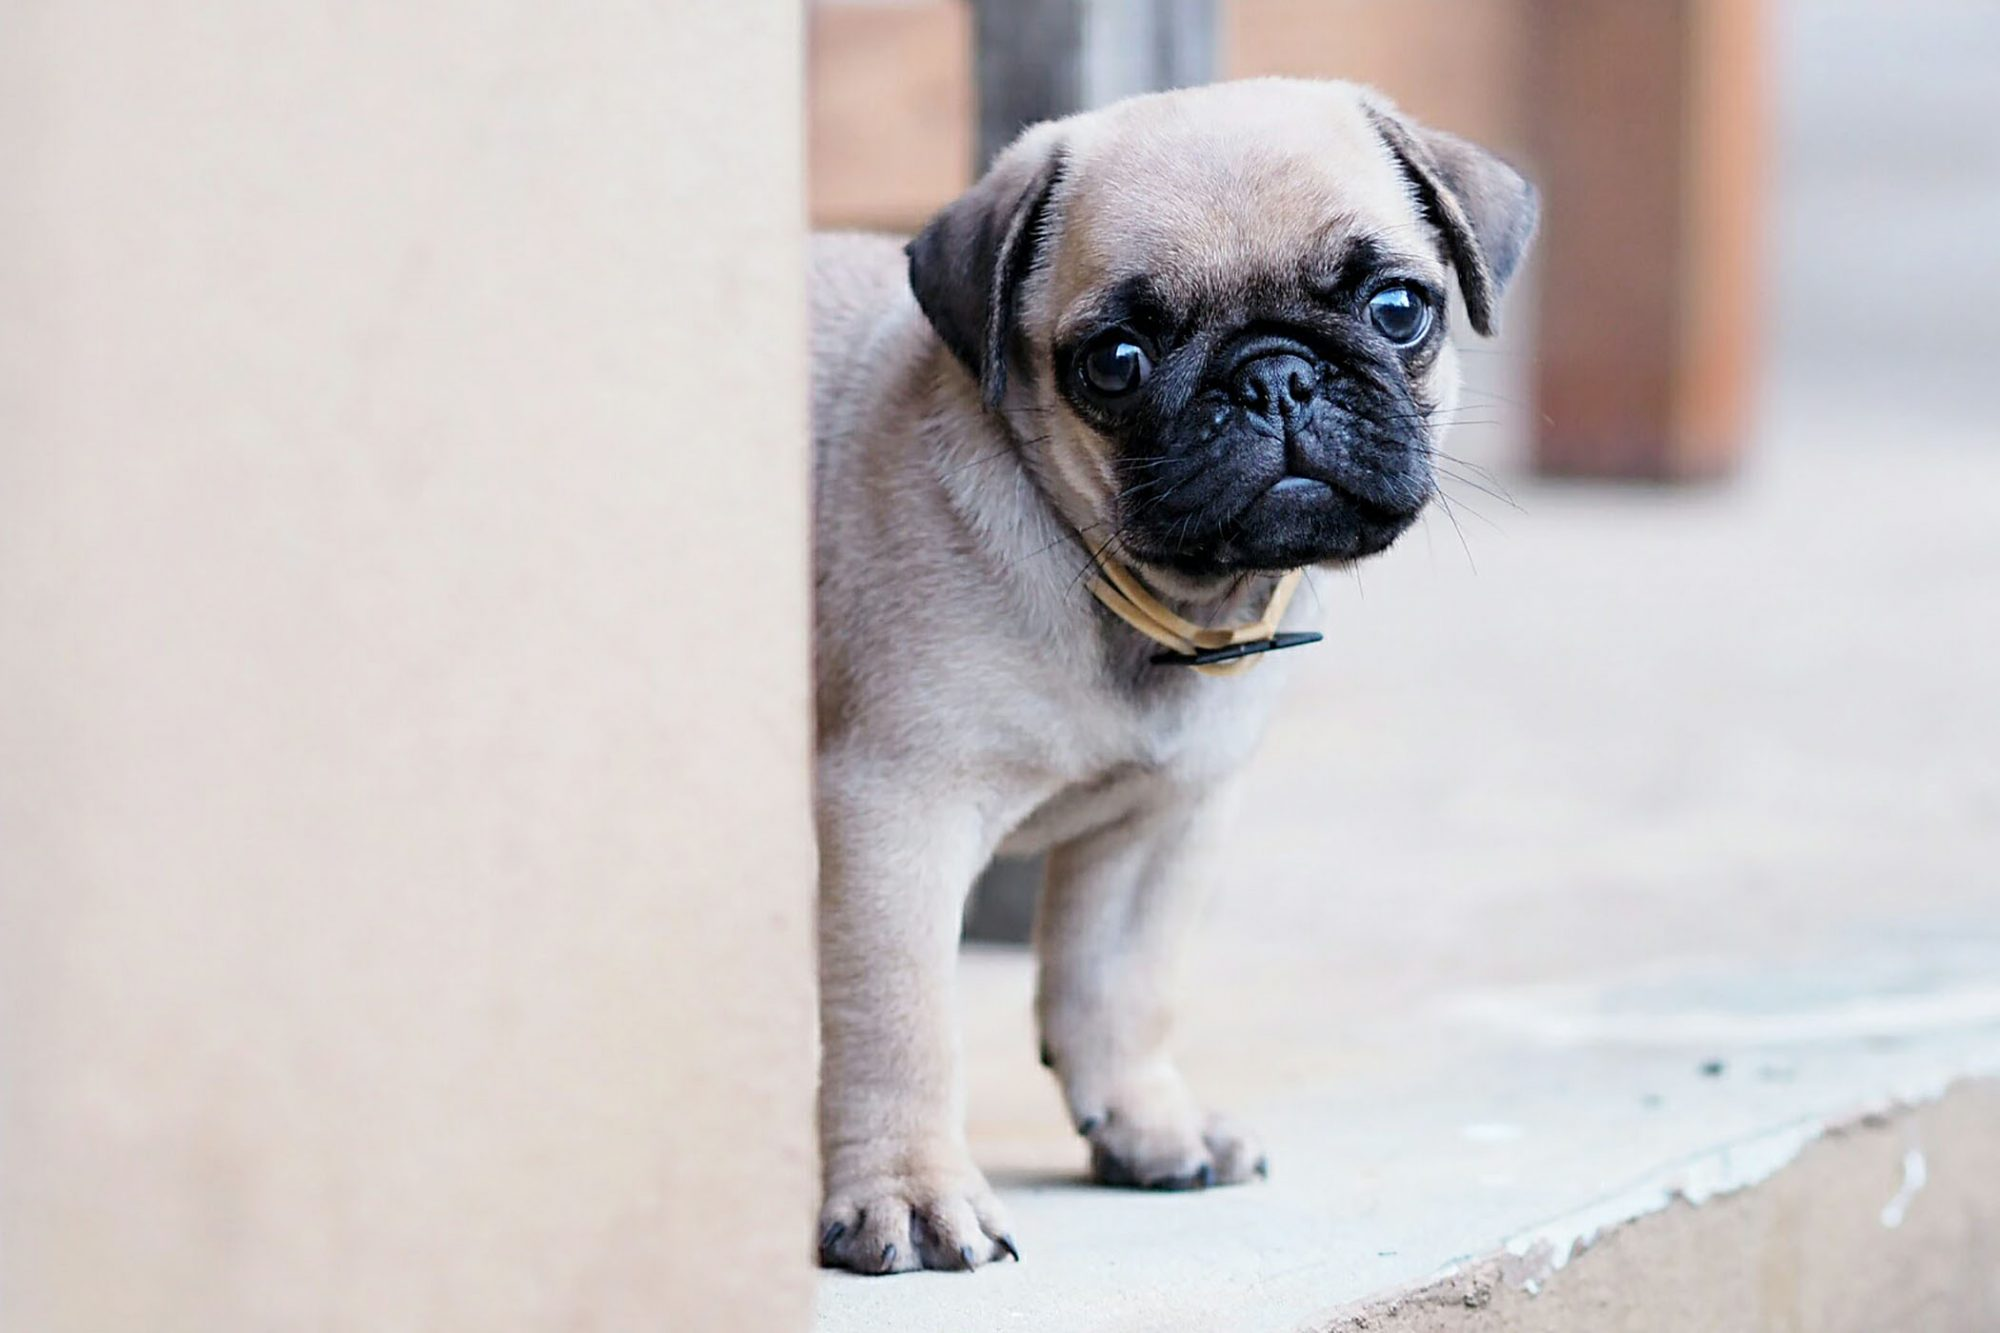 pug puppy peeking around wall